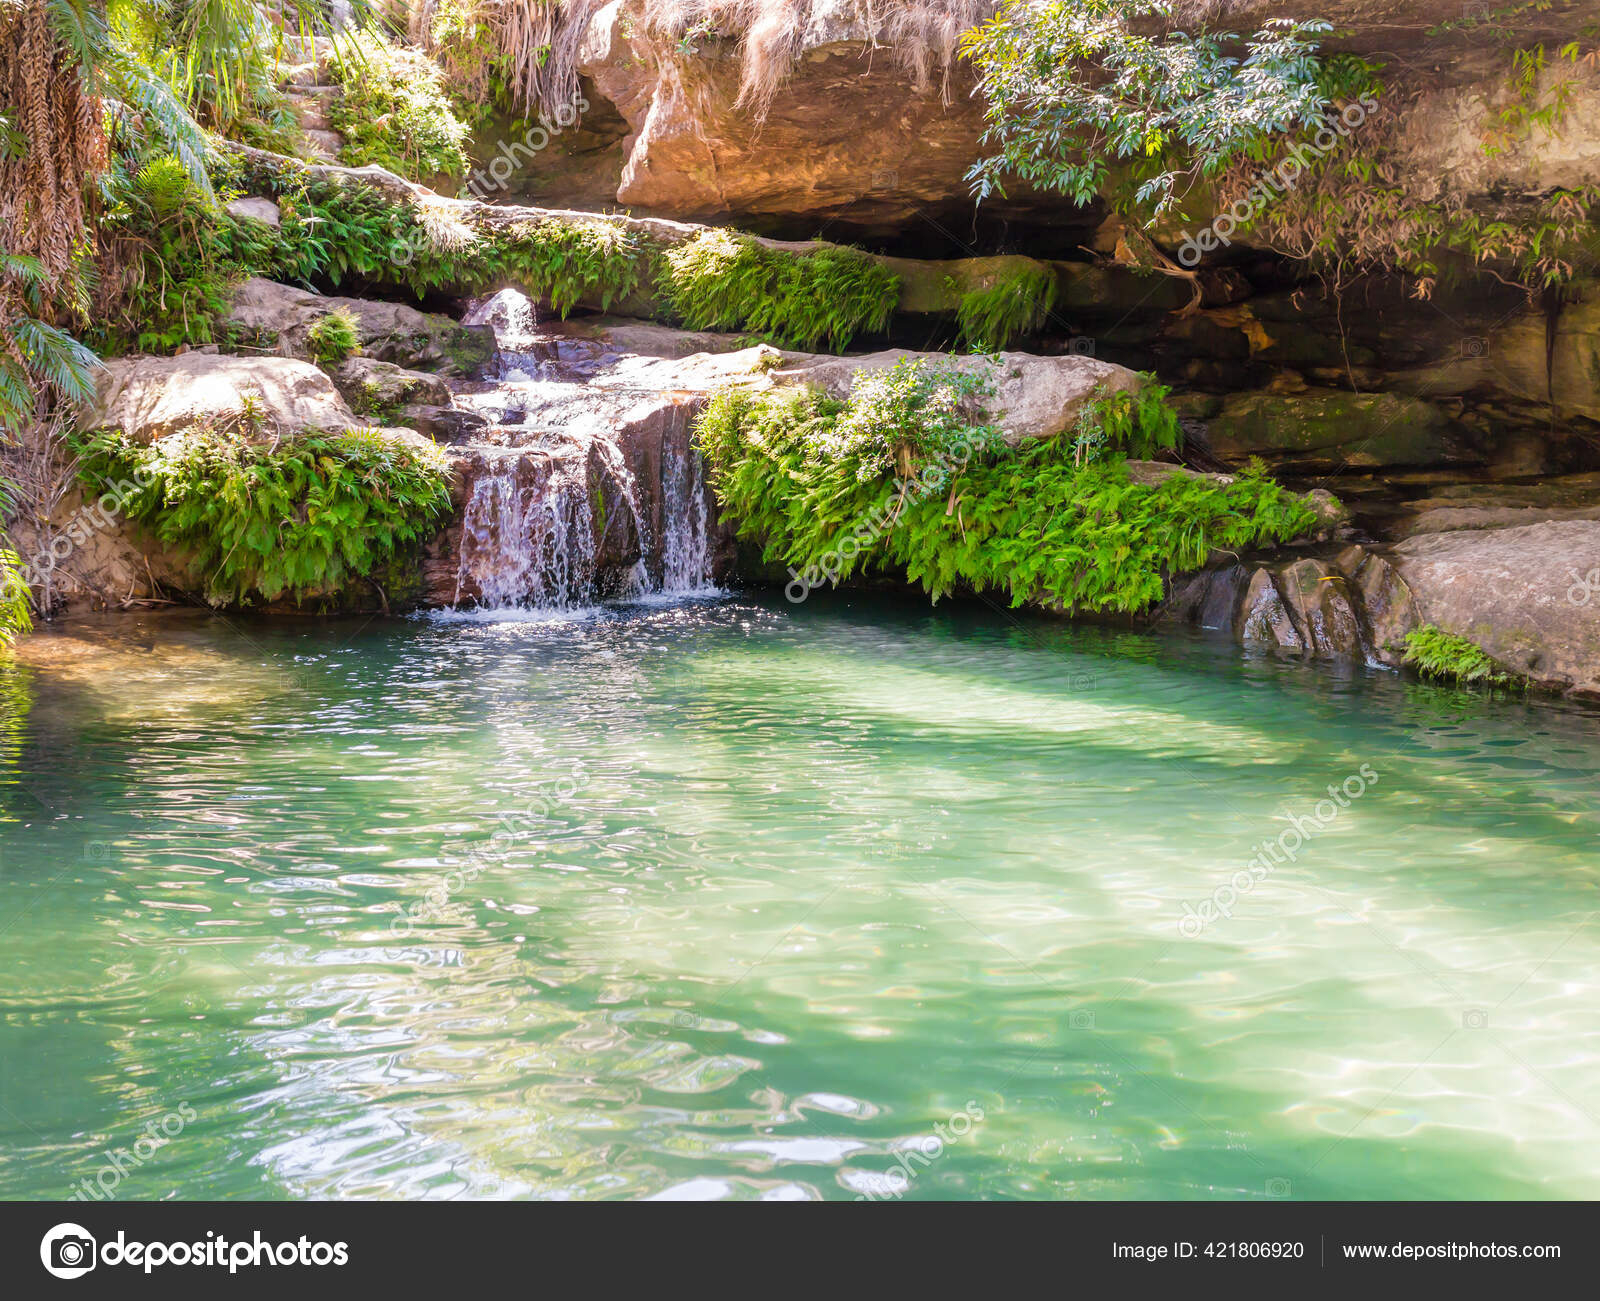 """Stunning Oasis Called """"La Piscine Naturelle"""", A Palm-Fringed Pool  Constantly Fed By A Crystalline Waterfall, Isalo National Park, Madagascar  421806920 concernant Piscine O'Bya"""